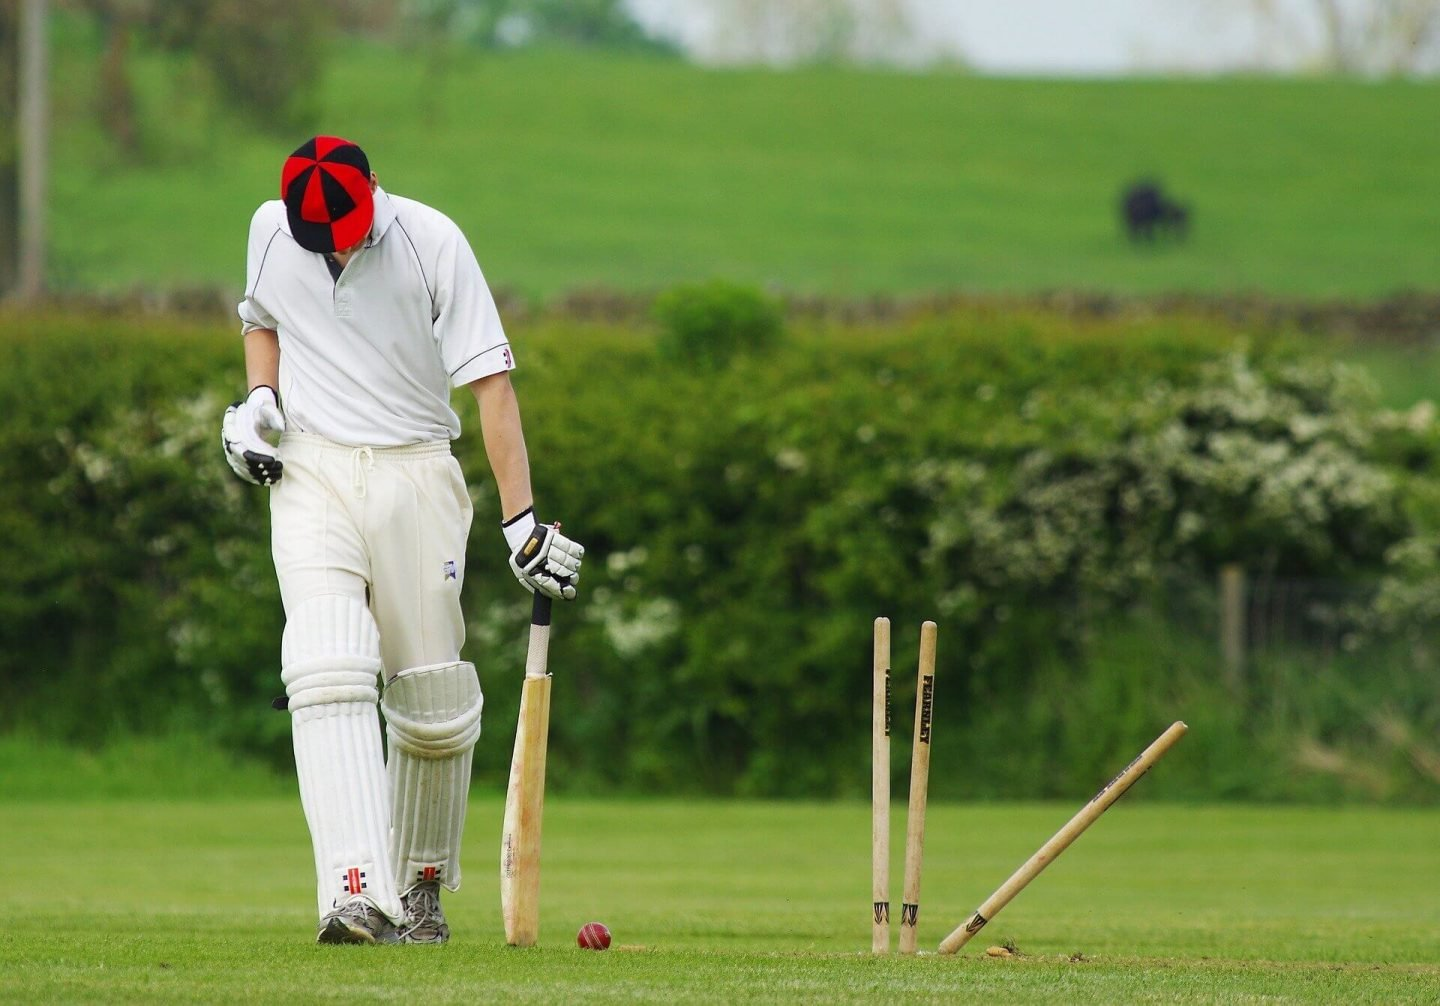 Cricket Quiz Questions and Answers - Batsman Bowled